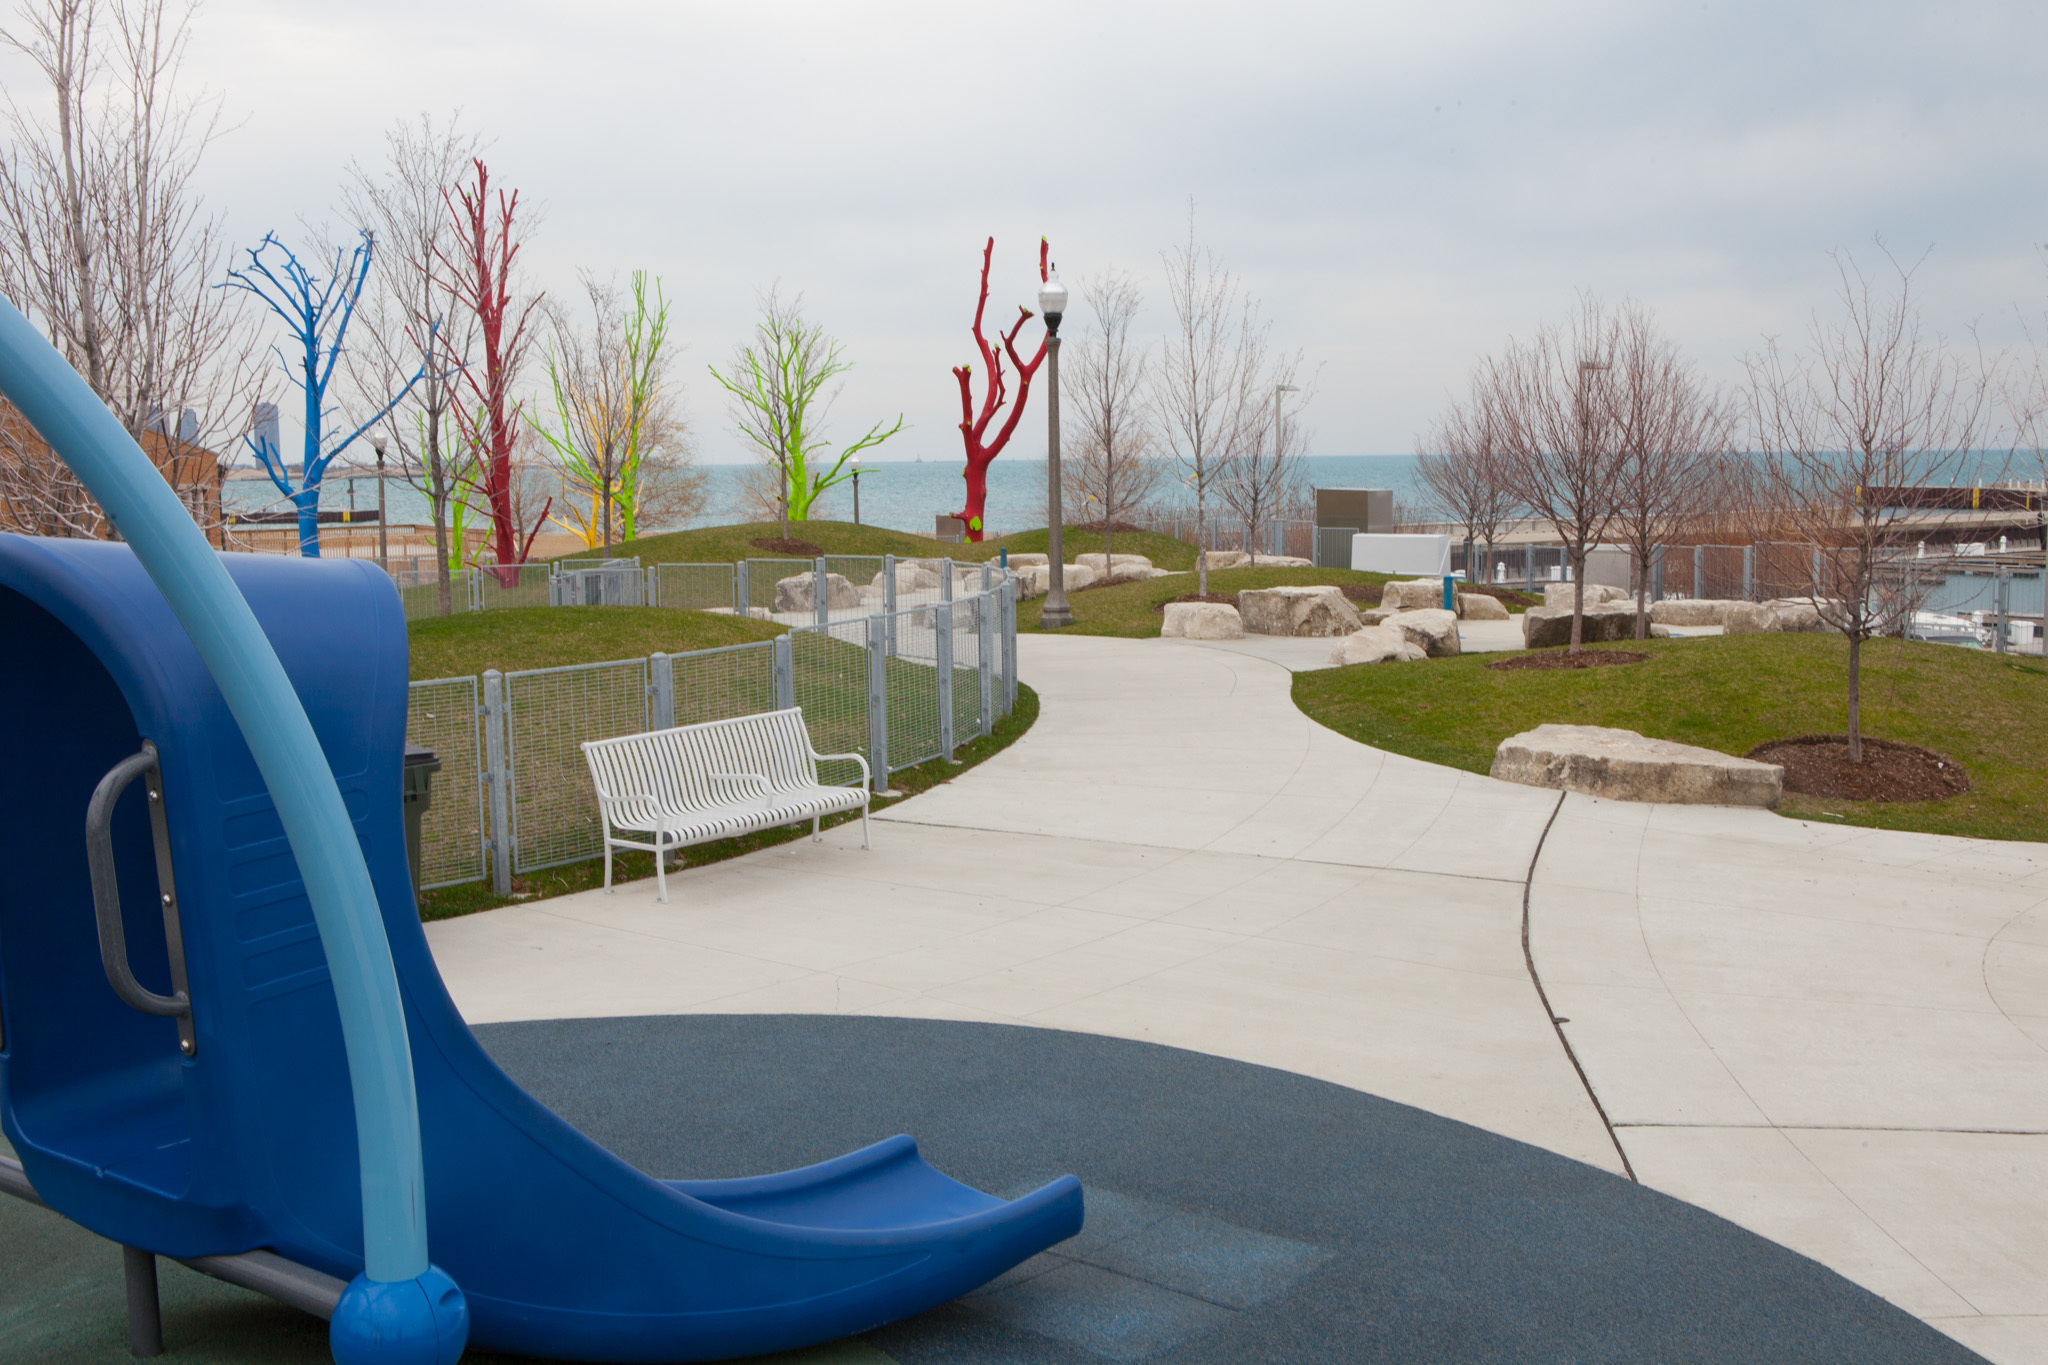 playgrounds in chicago for kids to slide and swing